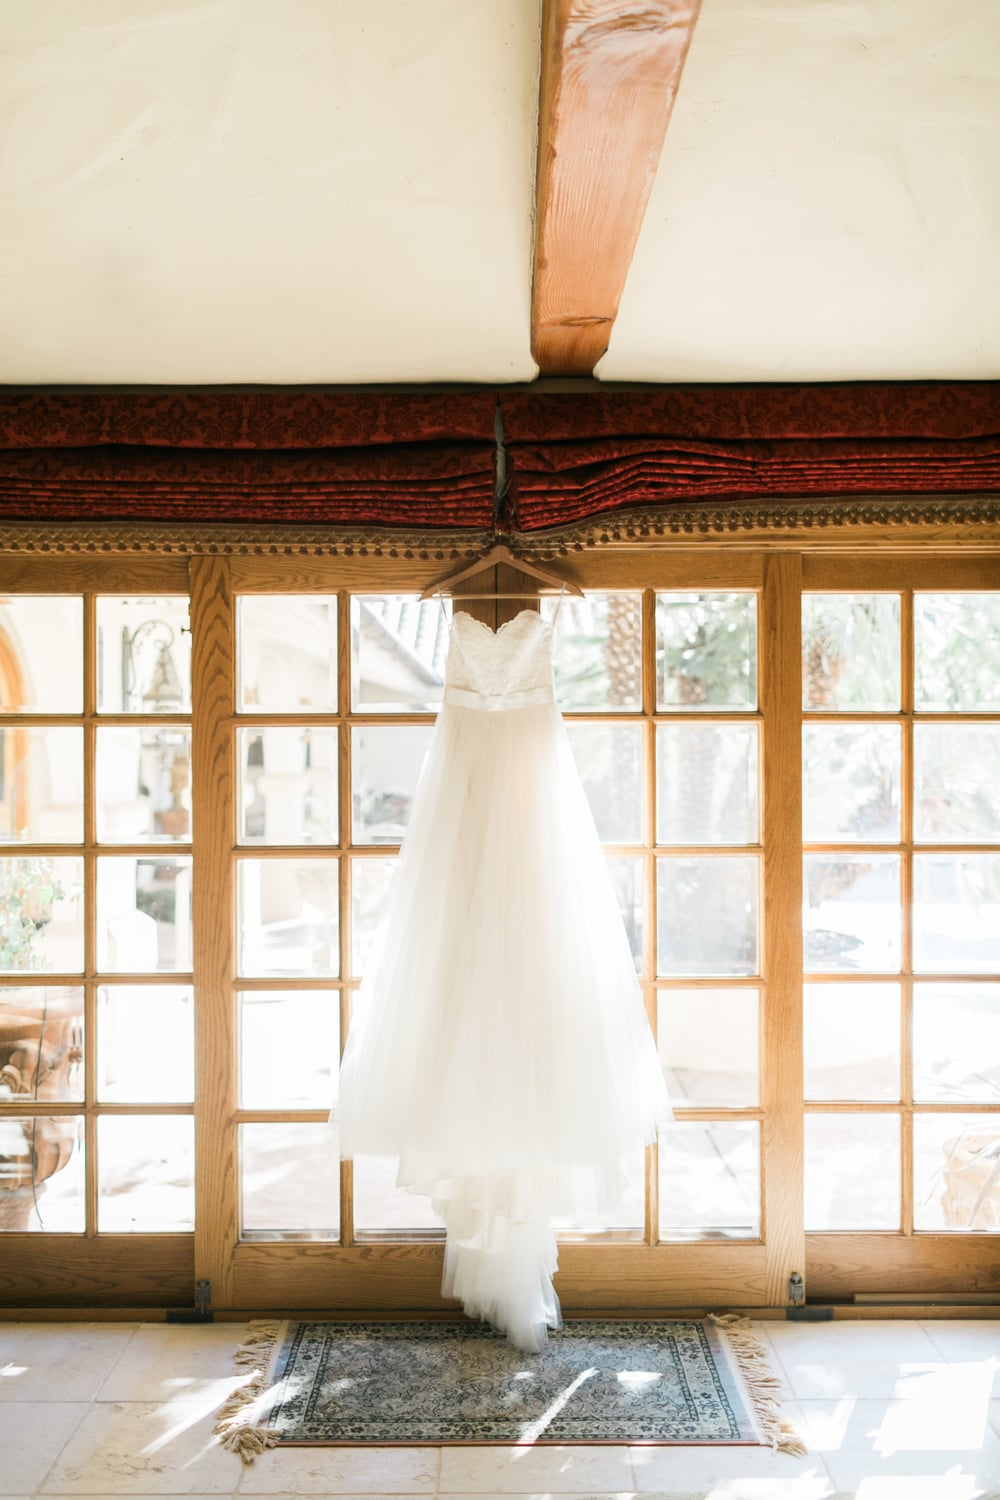 Natalie_Schutt_Photography_Winter_Wedding_San_Luis_Obispo-24.jpg